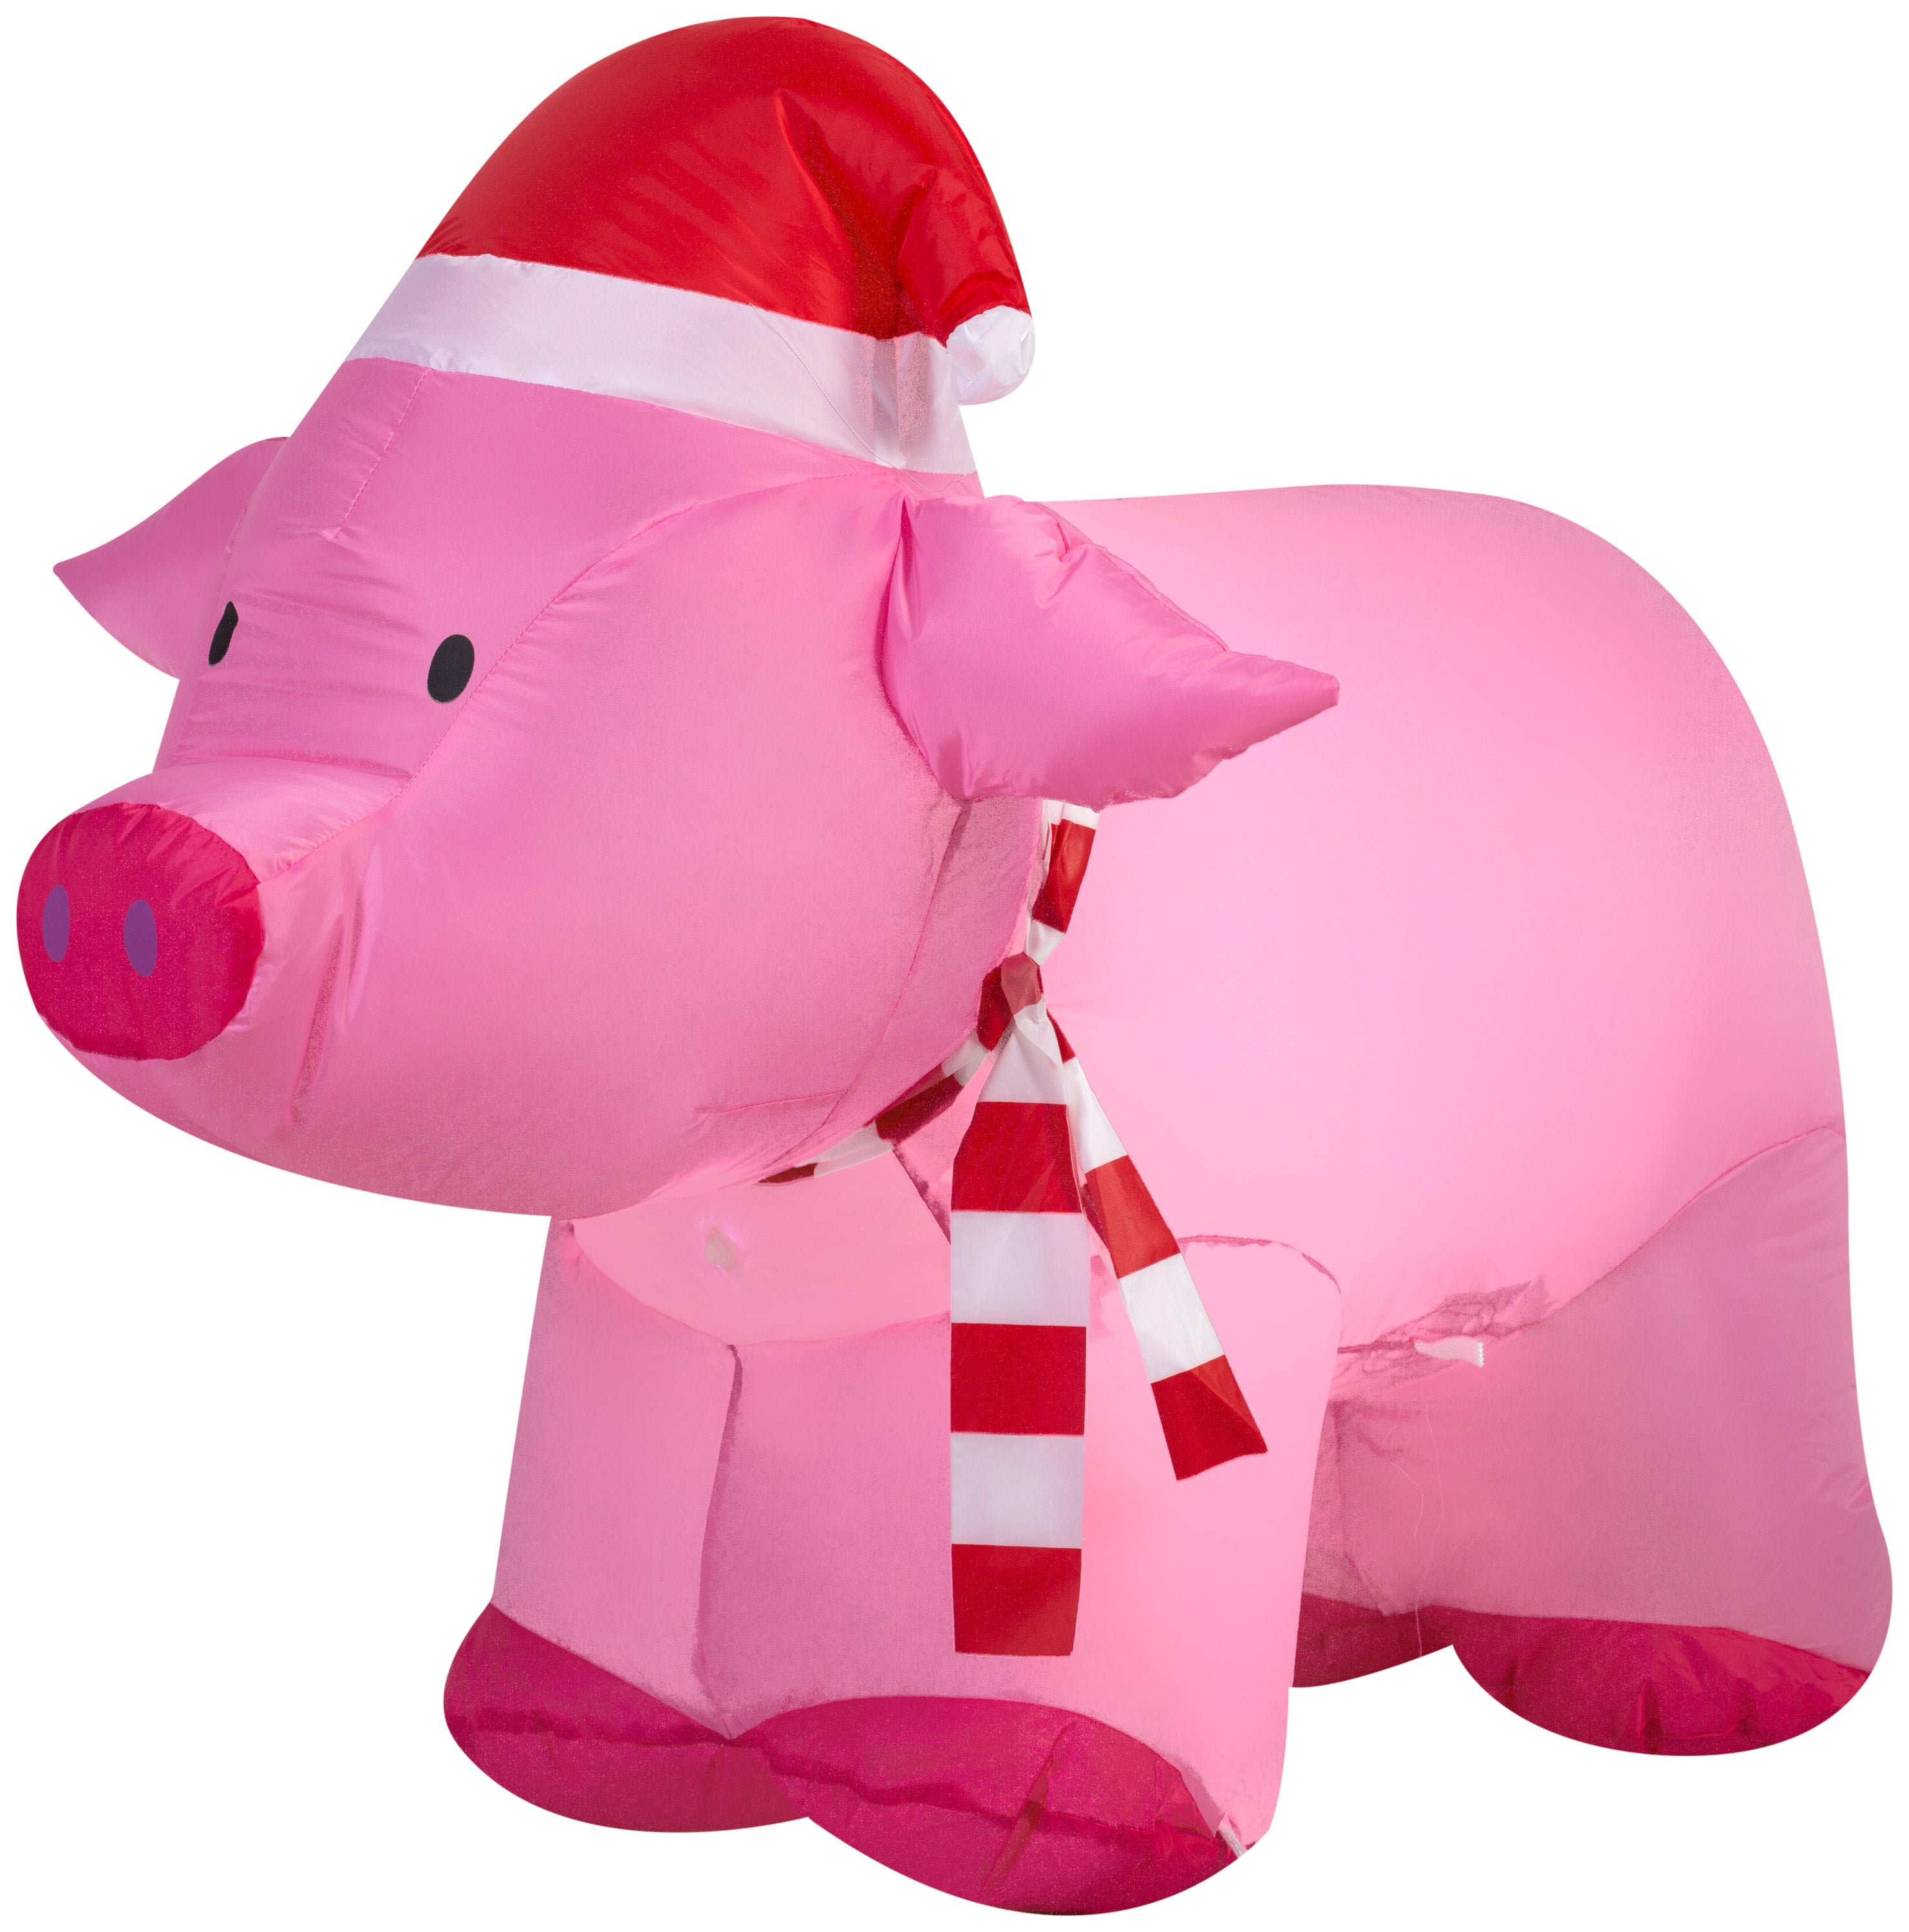 2.5' Airblown Pig Wearing Santa Hat Christmas Inflatable